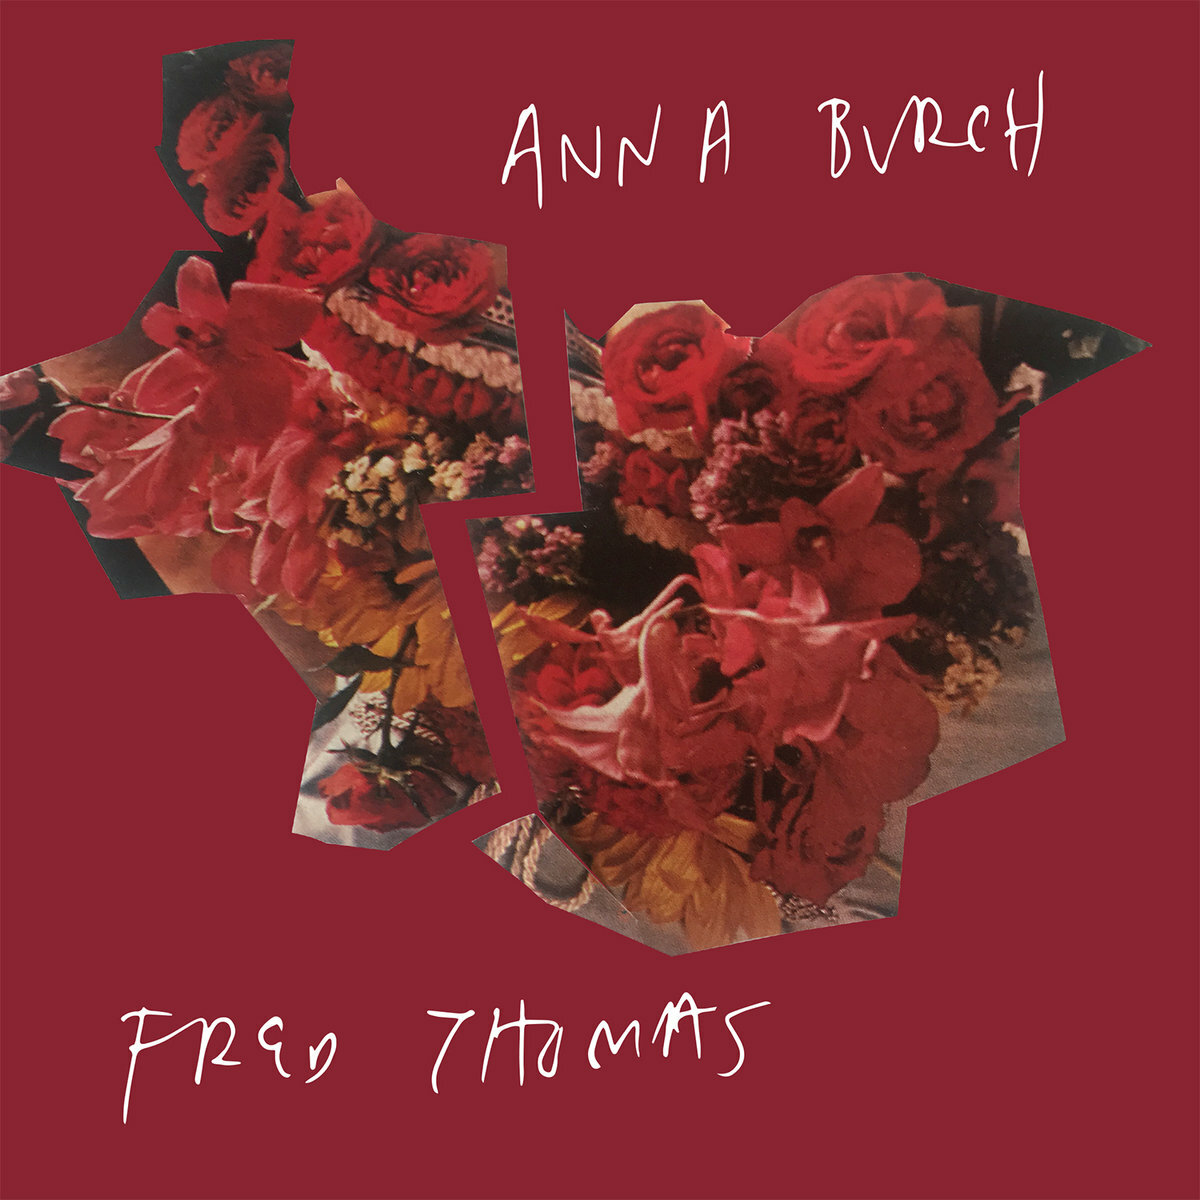 Fred Thomas / Anna Burch / Split(500 Ltd 7inch)